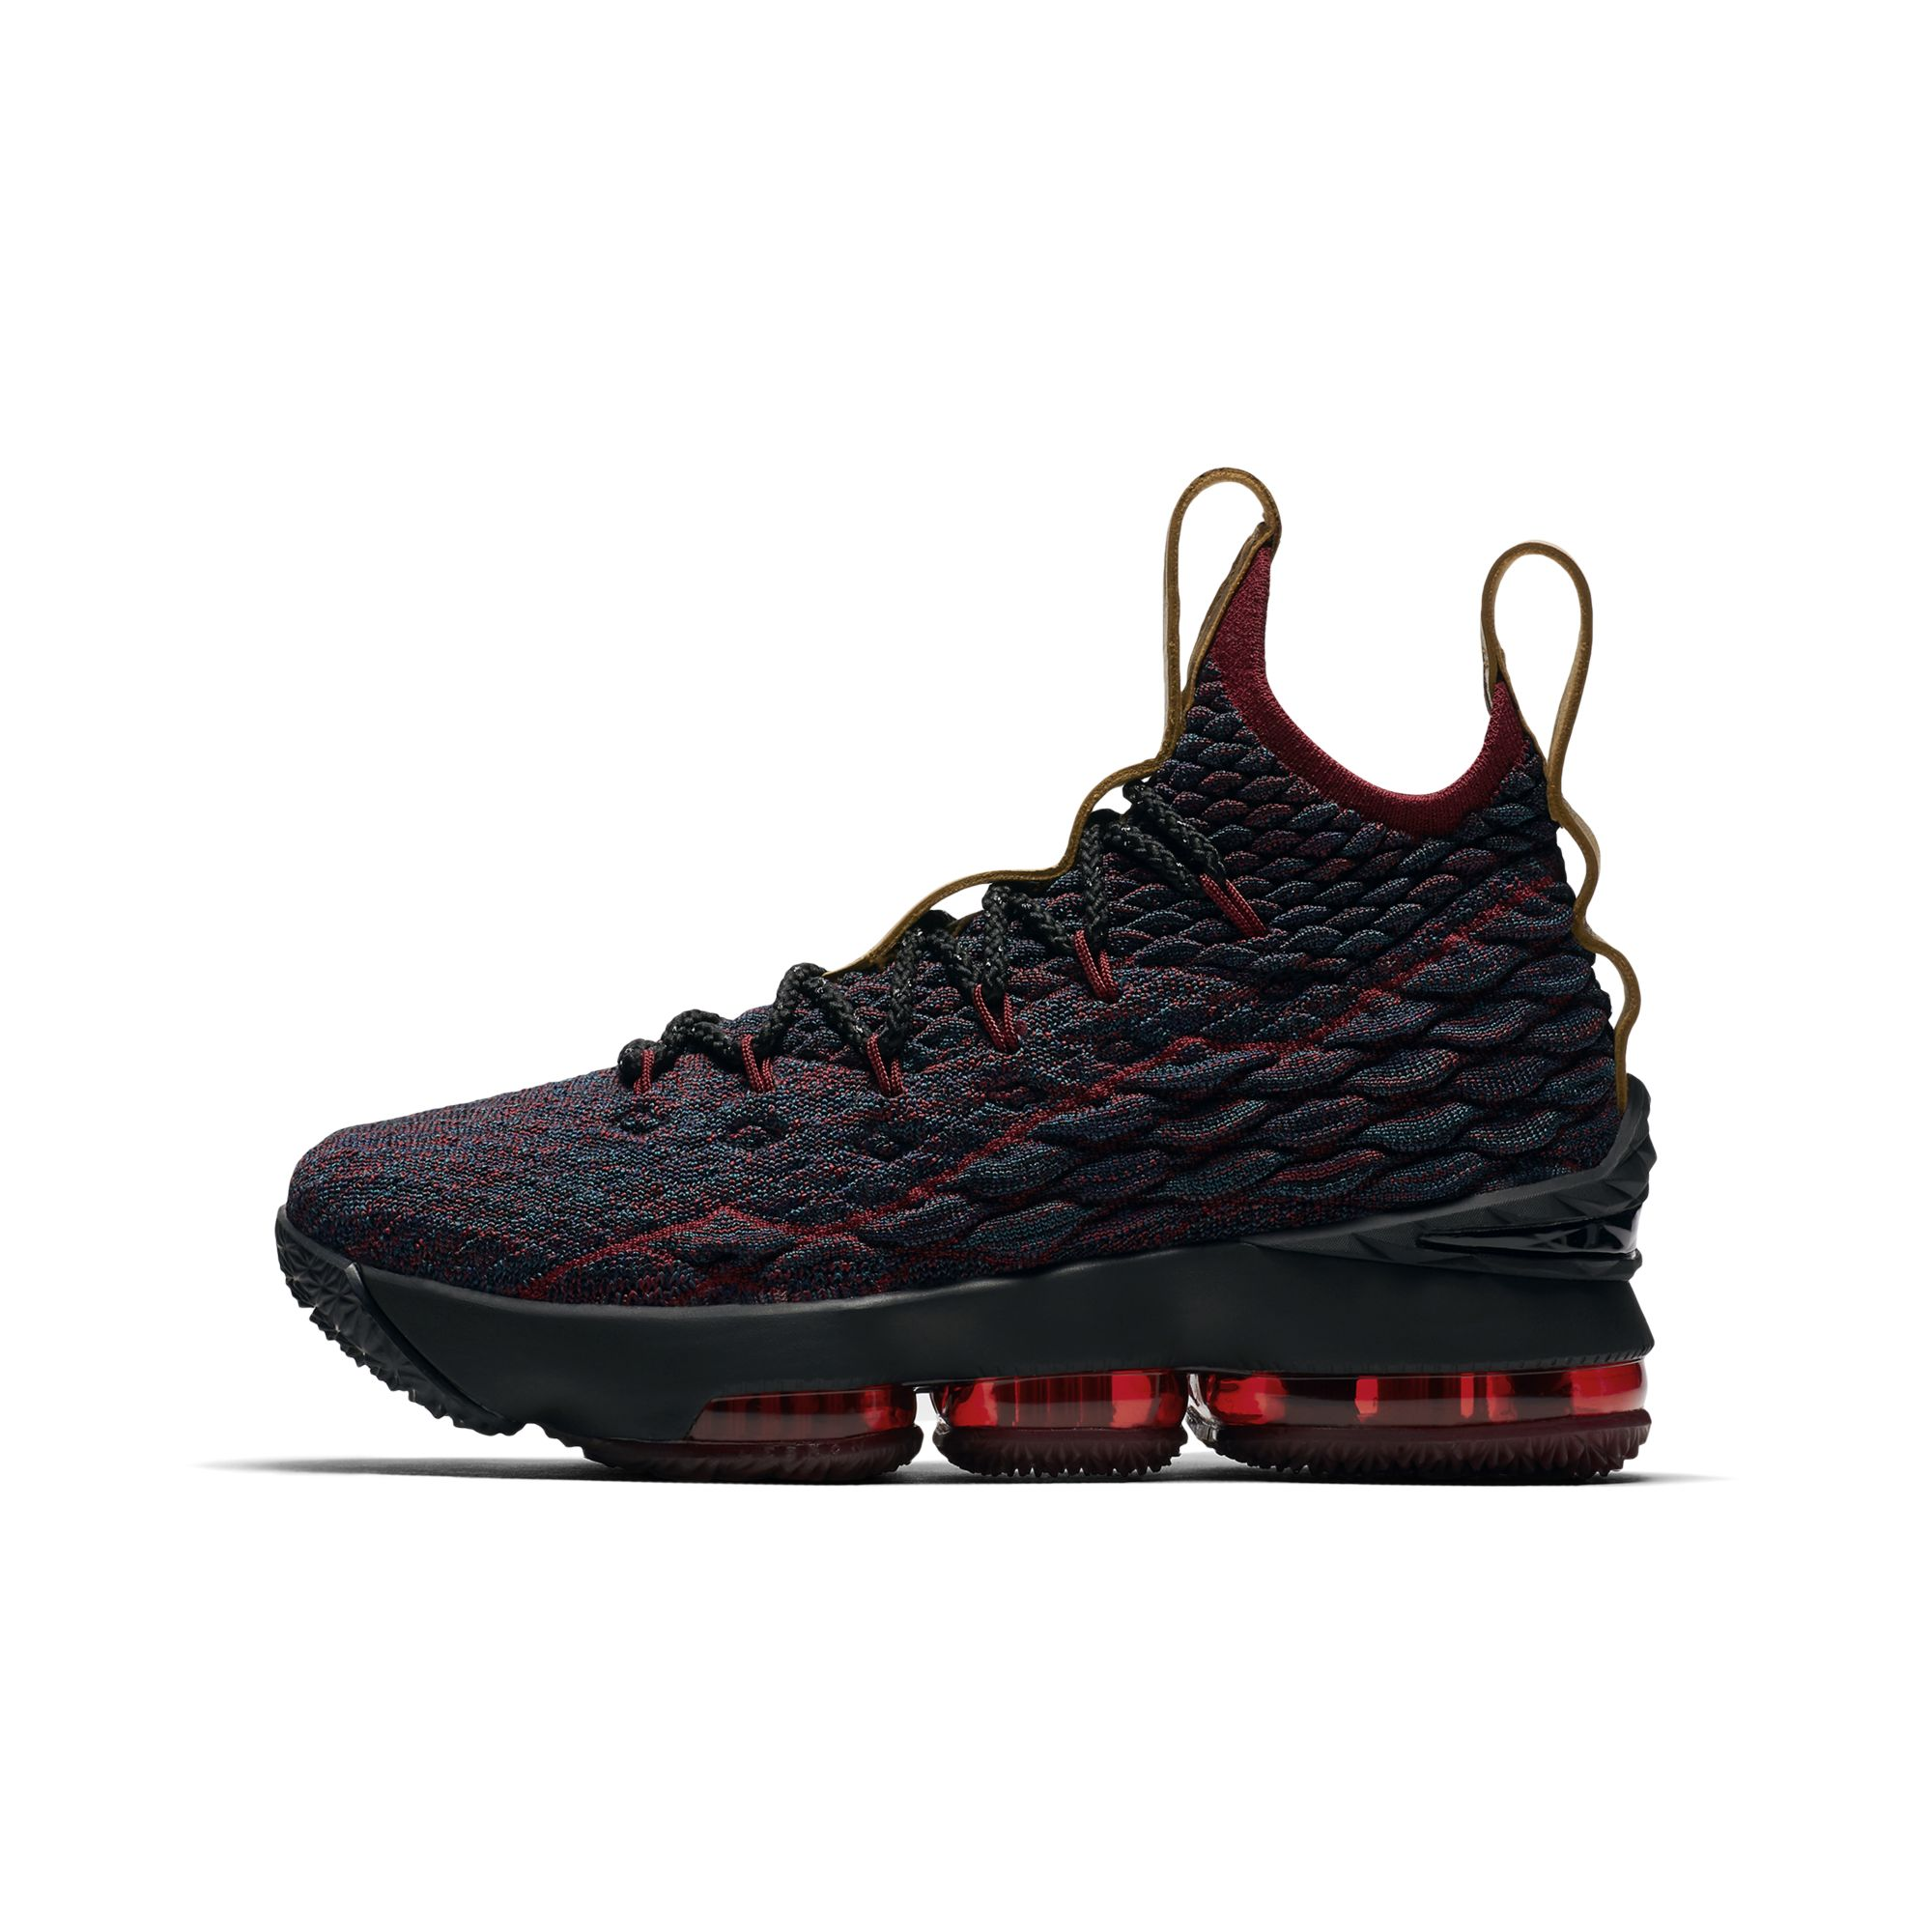 36ede954e08 ... Basketball Shoes in BlackSail the best attitude a0f33  nike lebron 15  new heights kids 2 new concept 58661 c7ea1 ...